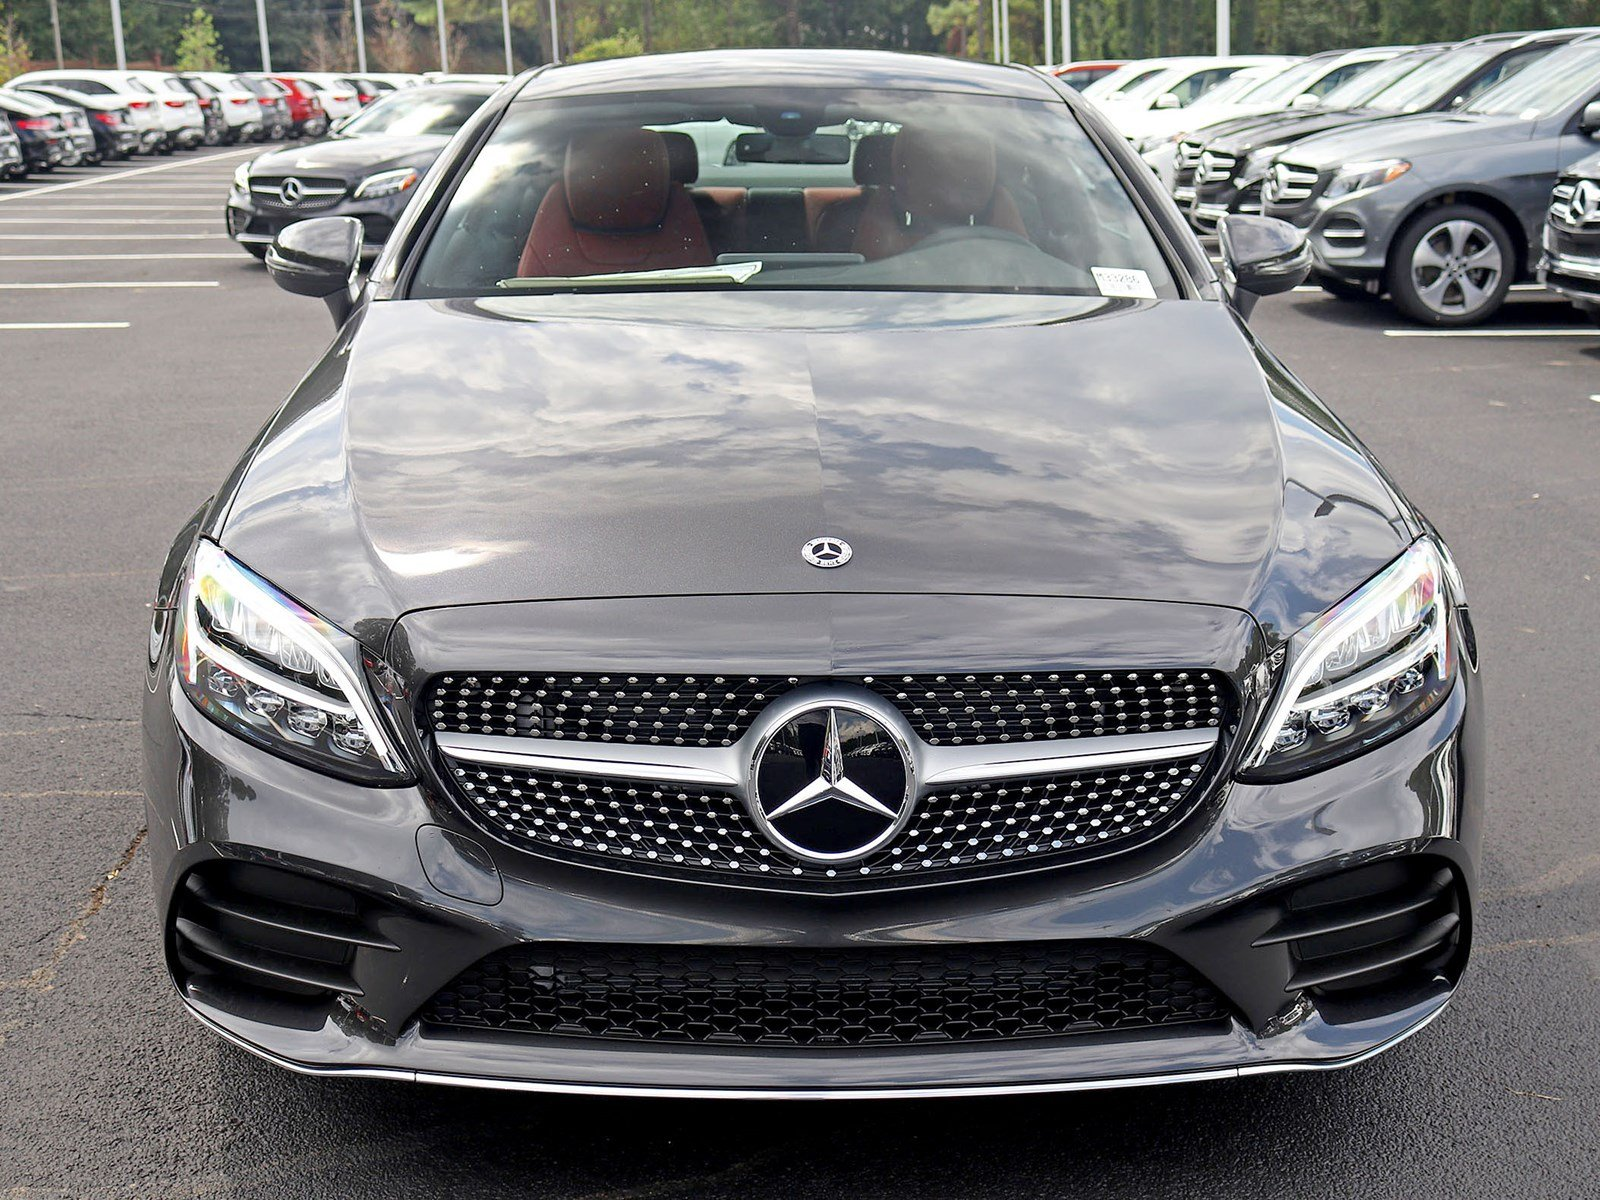 New 2019 Mercedes Benz C Class C 300 Coupe Coupe in Atlanta M